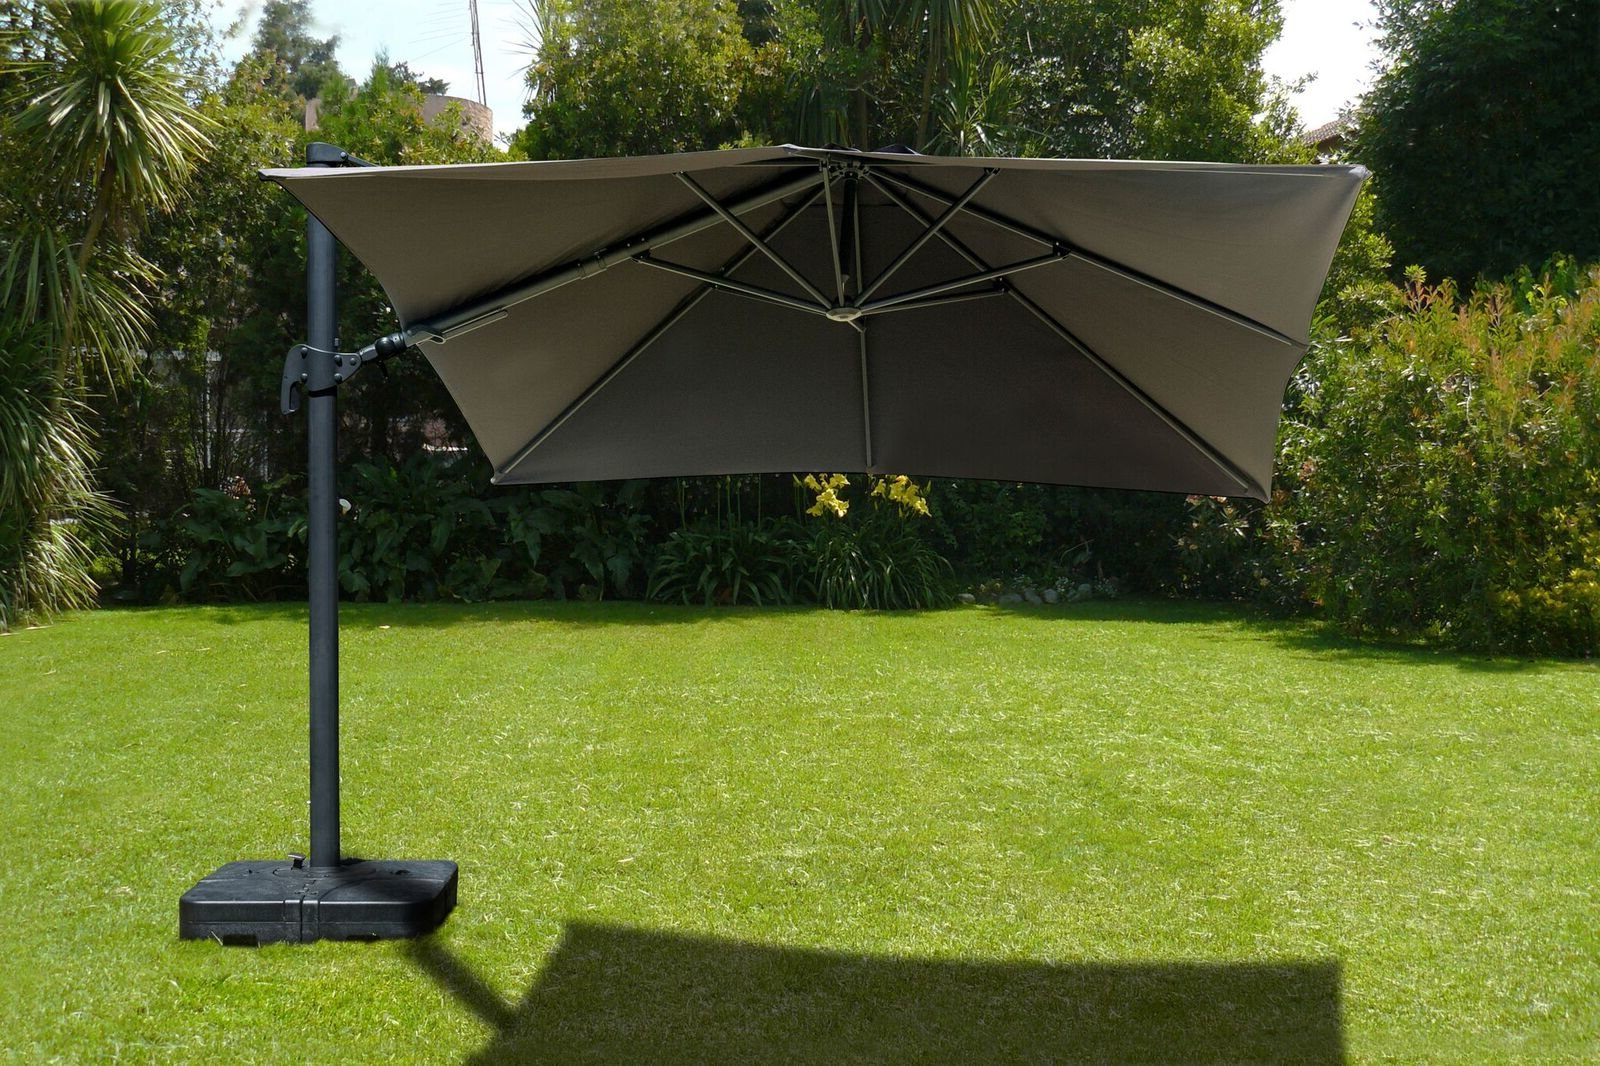 Popular Grote Liberty Aluminum Square Cantilever Umbrellas Within Gemmenne 10' Square Cantilever Umbrella (View 19 of 20)